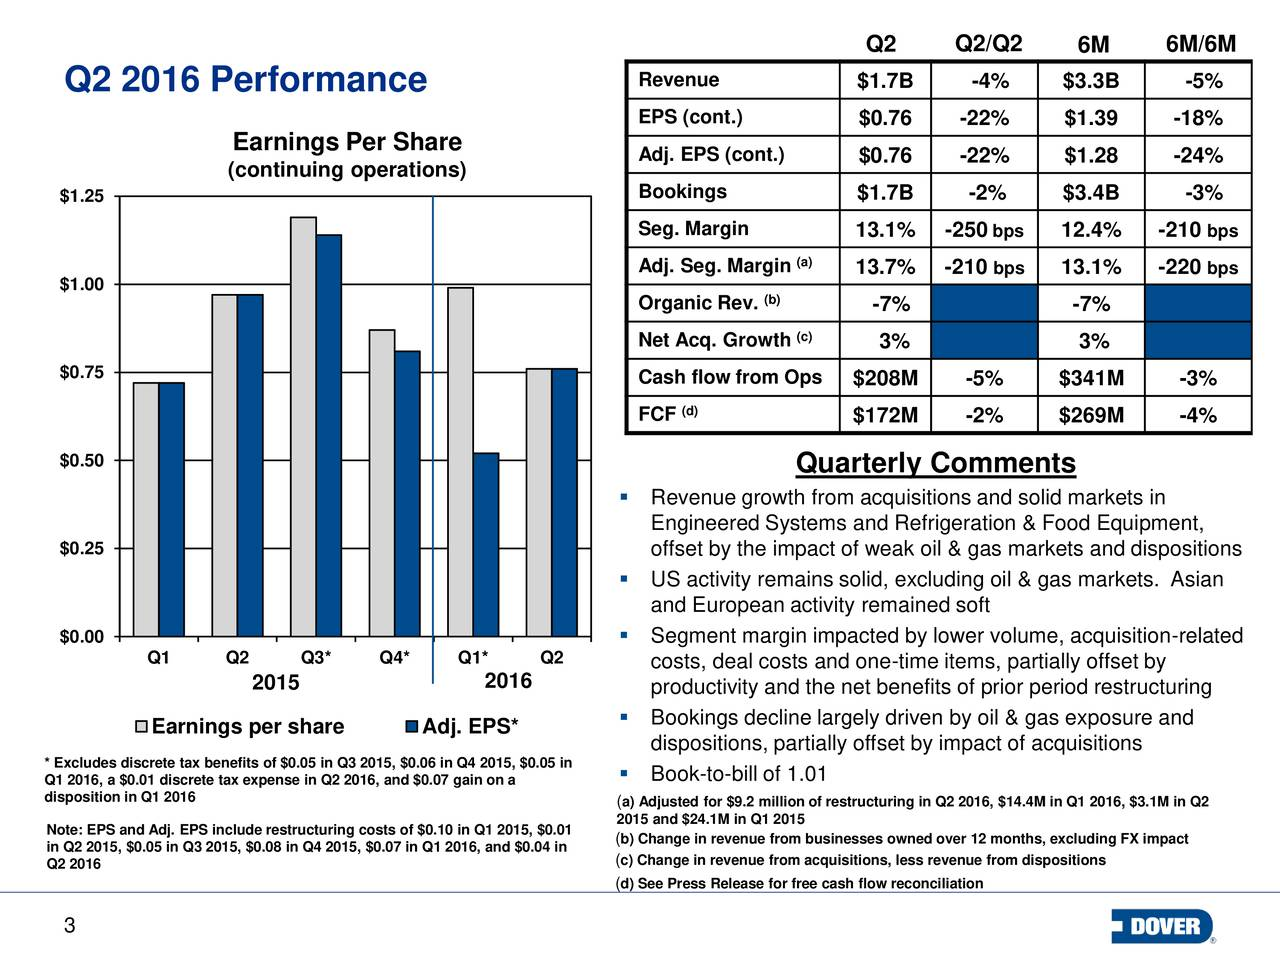 Revenue $1.7B -4% $3.3B -5% Q2 2016 Performance EPS (cont.) $0.76 -22% $1.39 -18% Earnings Per Share Adj. EPS (cont.) $0.76 -22% $1.28 -24% (continuing operations) $1.25 Bookings $1.7B -2% $3.4B -3% Seg. Margin 13.1% -250 bps 12.4% -210bps Adj. Seg. Margin(a) 13.7% -210 bps 13.1% -220bps $1.00 (b) Organic Rev. -7% -7% (c) Net Acq. Growth 3% 3% $0.75 Cash flow from Ops $208M -5% $341M -3% FCF (d) $172M -2% $269M -4% $0.50 Quarterly Comments Revenue growth from acquisitions and solid markets in Engineered Systems and Refrigeration & Food Equipment, $0.25 offset by the impact of weak oil & gas markets and dispositions US activity remains solid, excluding oil & gas markets. Asian and European activity remained soft $0.00  Segment margin impacted by lower volume, acquisition-related Q1 Q2 Q3* Q4* Q1* Q2 costs, deal costs and one-time items, partially offset by 2015 2016 productivity and the net benefits of prior period restructuring Earnings per share Adj. EPS*  Bookings decline largely driven by oil & gas exposure and dispositions, partially offset by impact of acquisitions * Excludes discrete tax benefits of $0.05 in Q3 2015, $0.06 in Q4 2015, $0.05 in Q1 2016, a $0.01 discrete tax expense in Q2 2016, and $0.07 gain on aill of 1.01 disposition in Q1 2016 a) Adjusted for $9.2 million of restructuring in Q2 2016, $14.4M in Q1 2016, $3.1M in Q2 2015 and $24.1M in Q1 2015 in Q2 2015, $0.05 in Q3 2015, $0.08 in Q4 2015, $0.07 in Q1 2016, and $0.04 infrom businesses owned over 12 months, excluding FX impact Q2 2016 c) Change in revenue from acquisitions, less revenue from dispositions d) See Press Release for free cash flow reconciliation 3